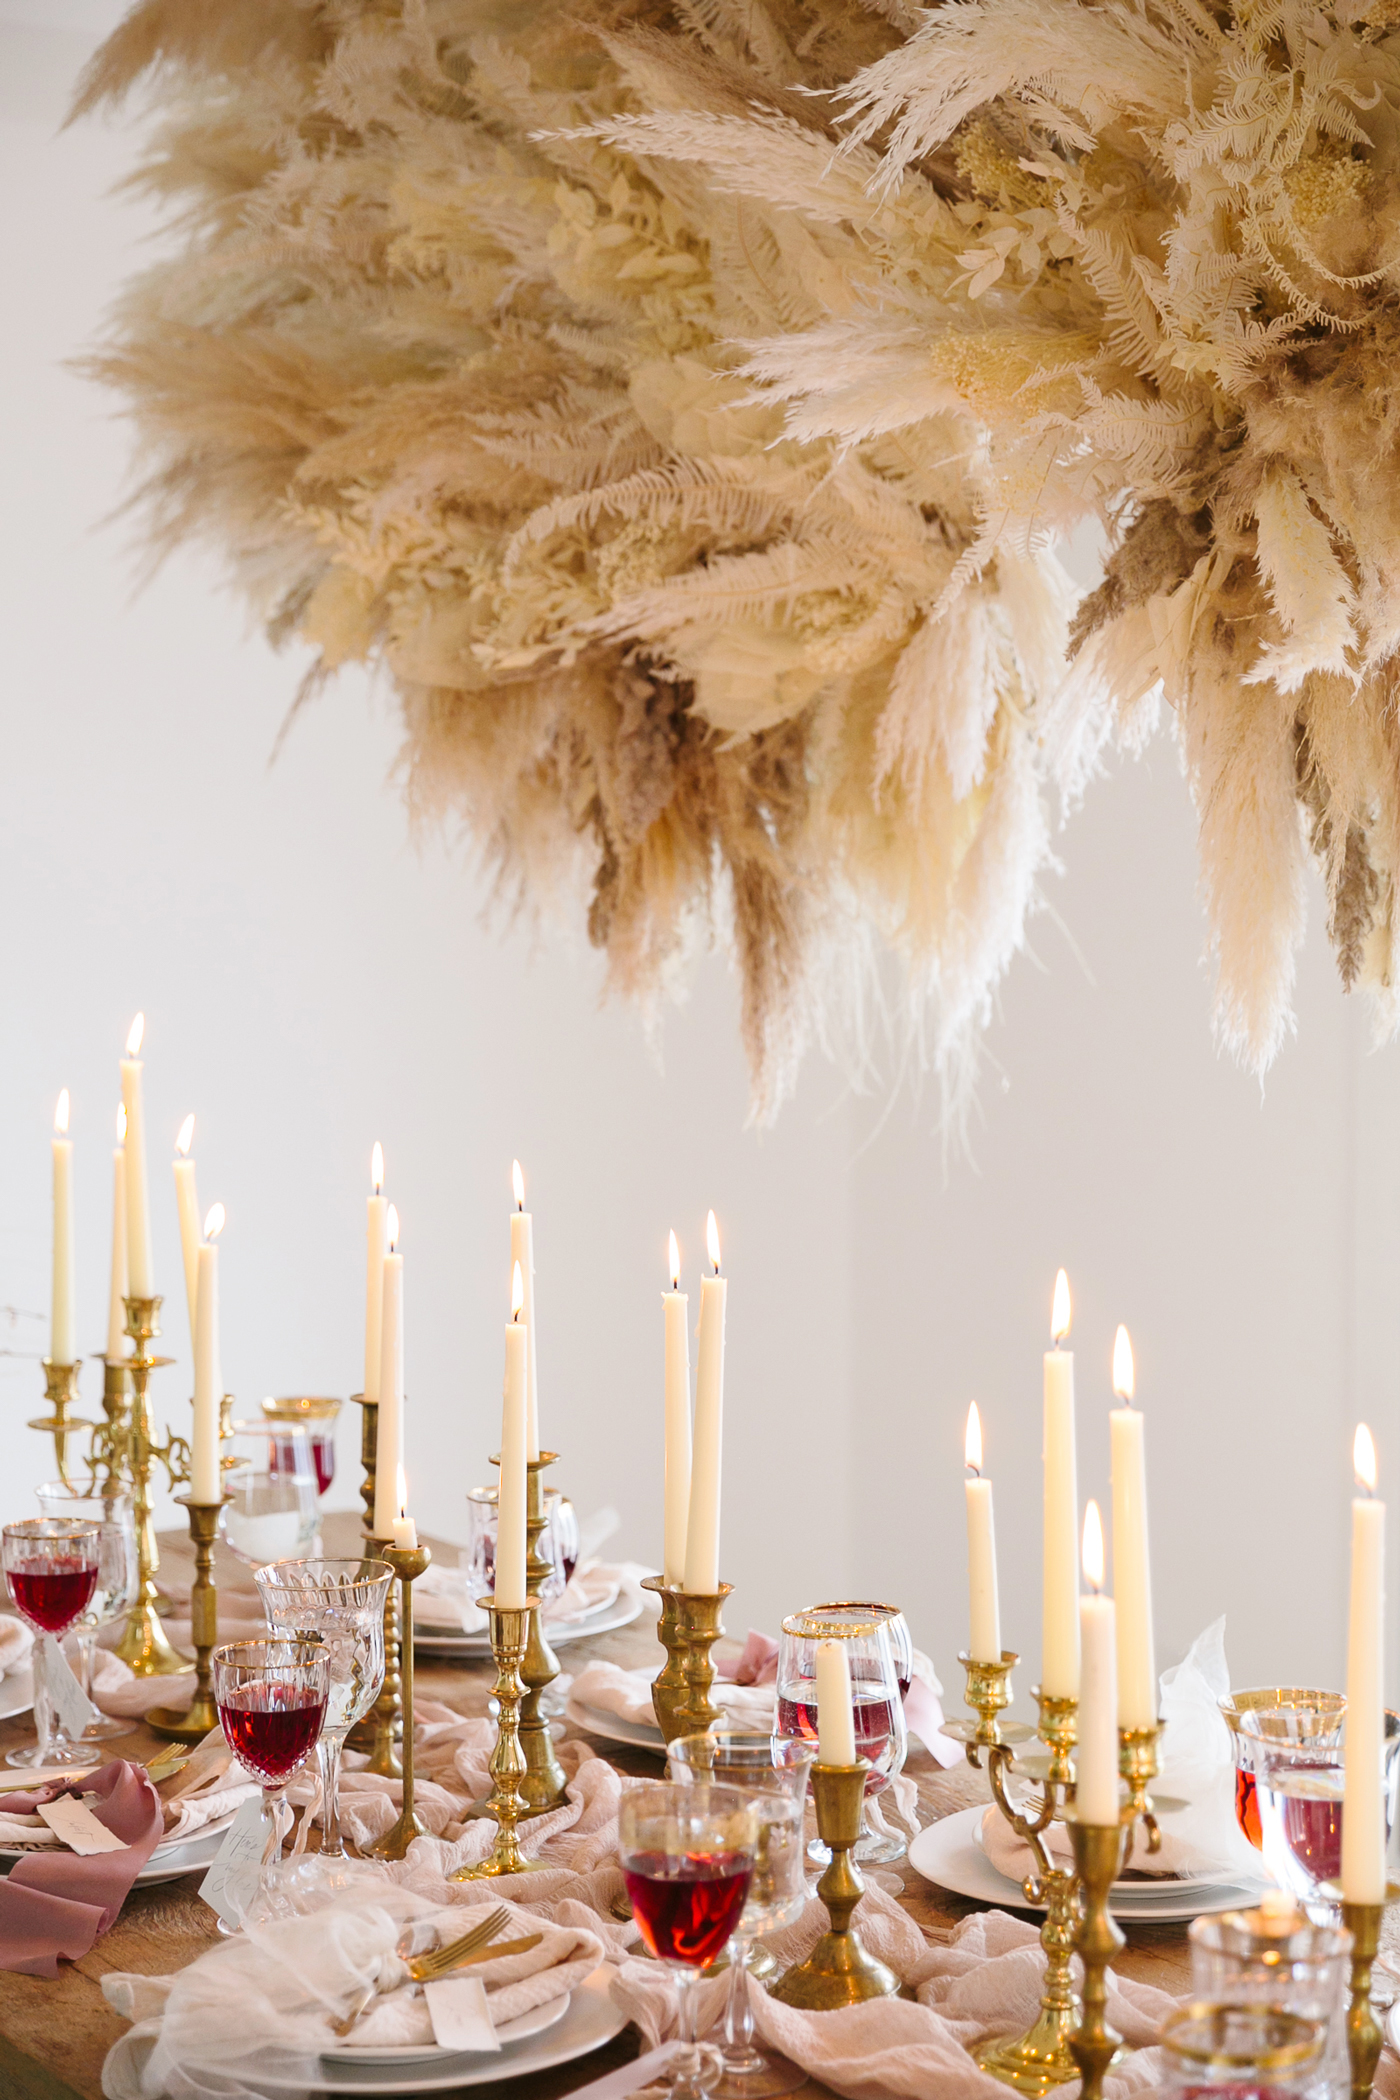 romeo and juliet valentines day party table setting with gold candle sticks and glasses of wine